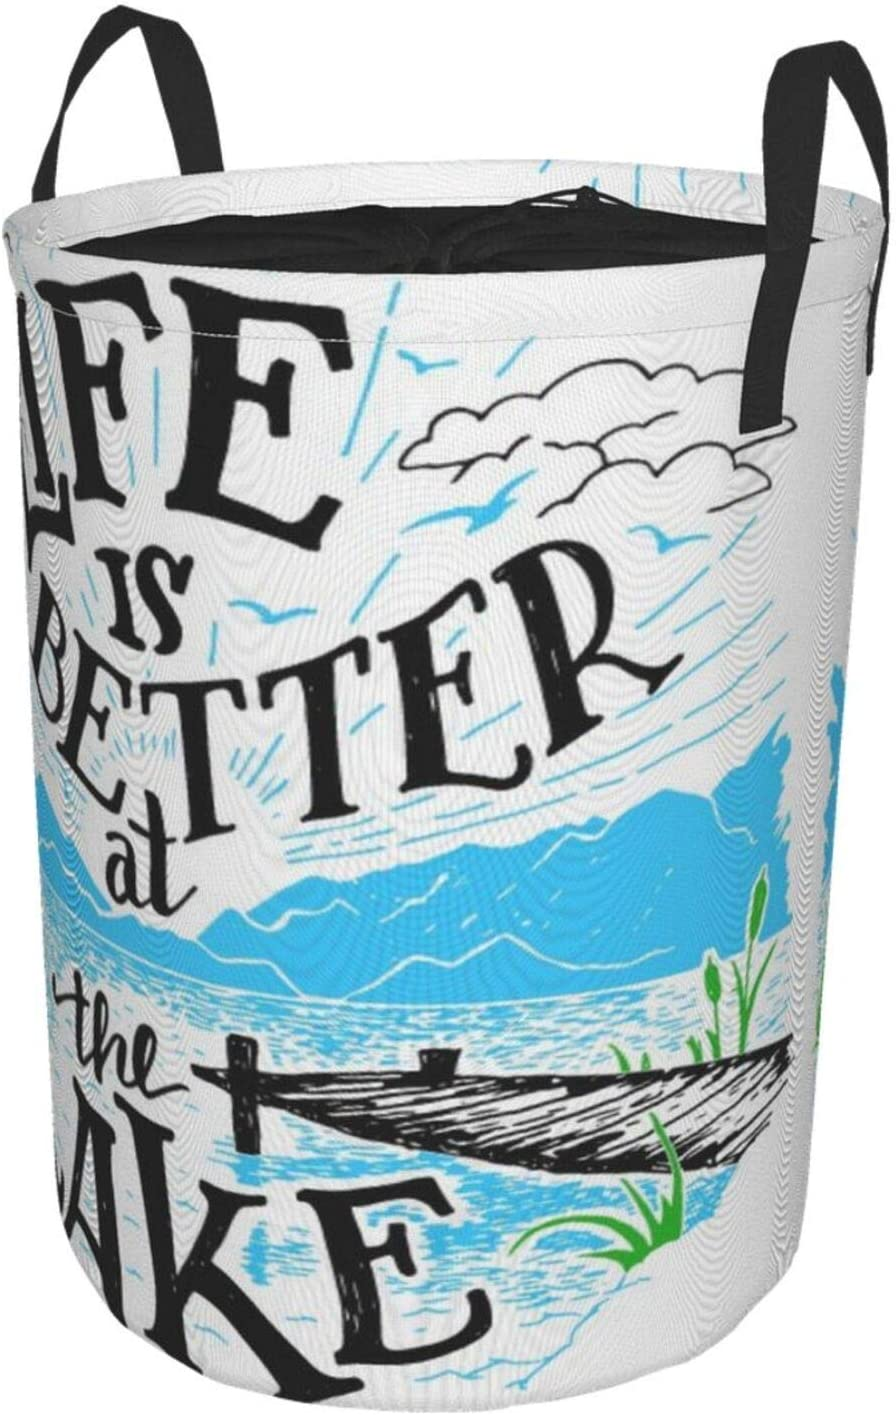 Janrely Personalized Large Washing Clothes Hamper,Cabin Decor Life is Better at The Lake Wooden Pier Plants Mountains Outdoors Sketch,Round Folding Laundry Basket Family Toys Storage Sack,14 x 19in